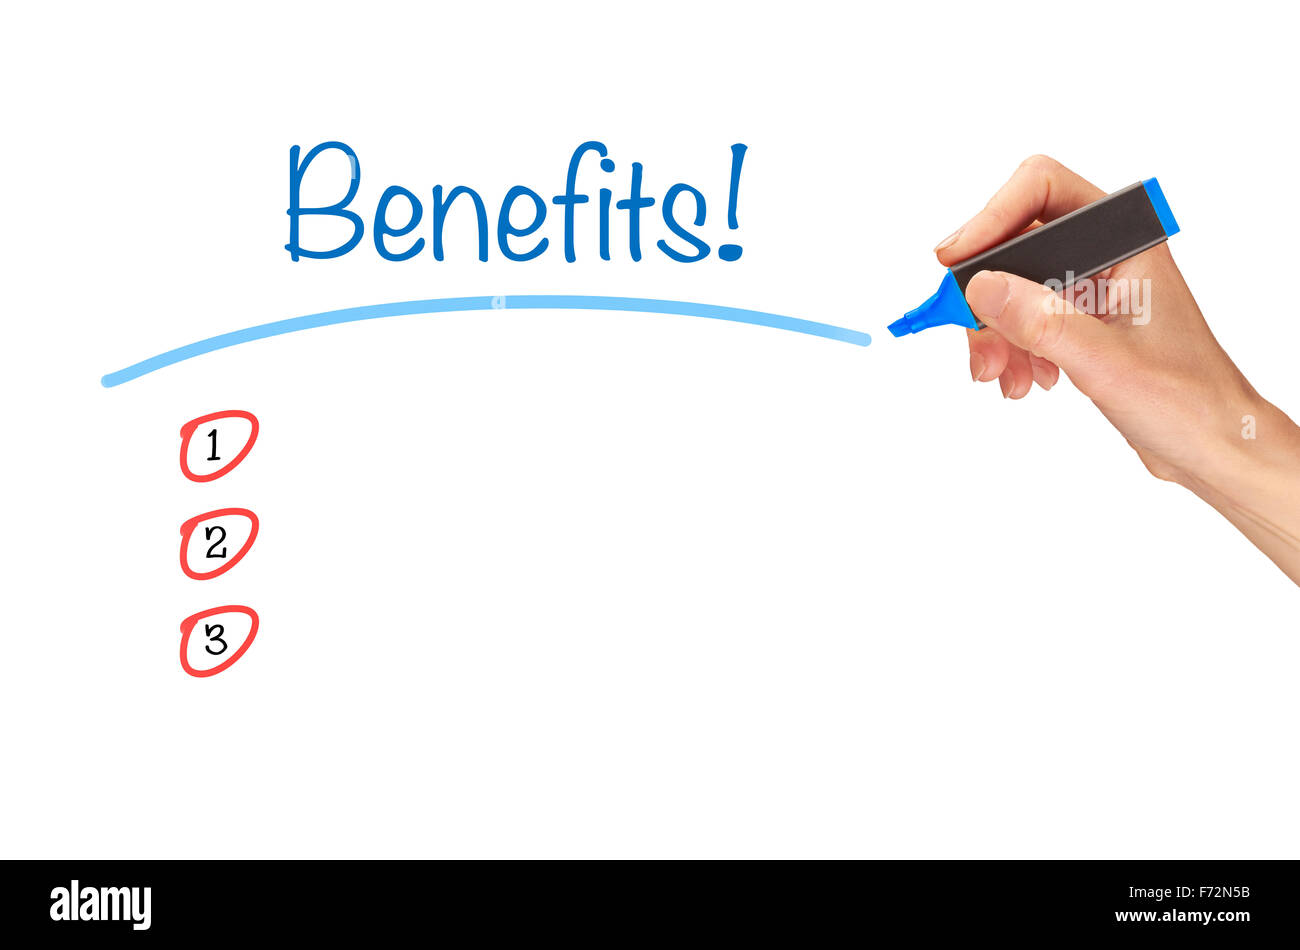 Benefits, written in marker on a clear screen. - Stock Image